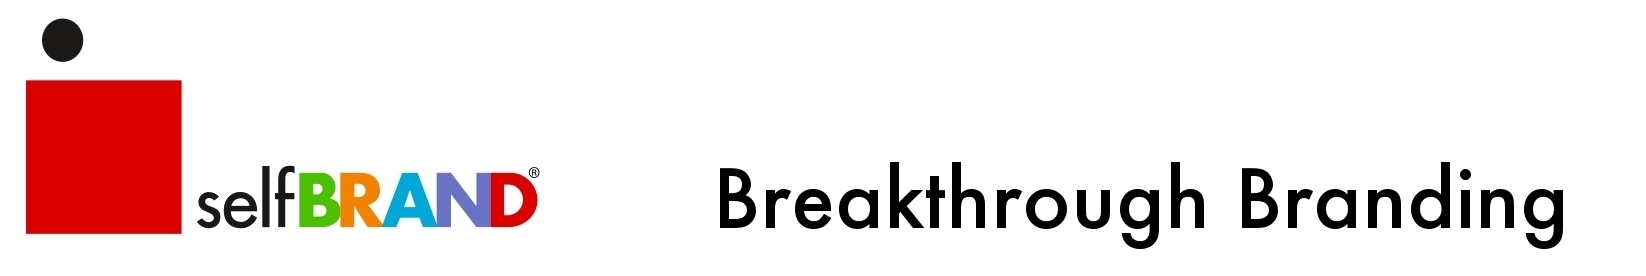 SelfBrand: Breakthrough Branding